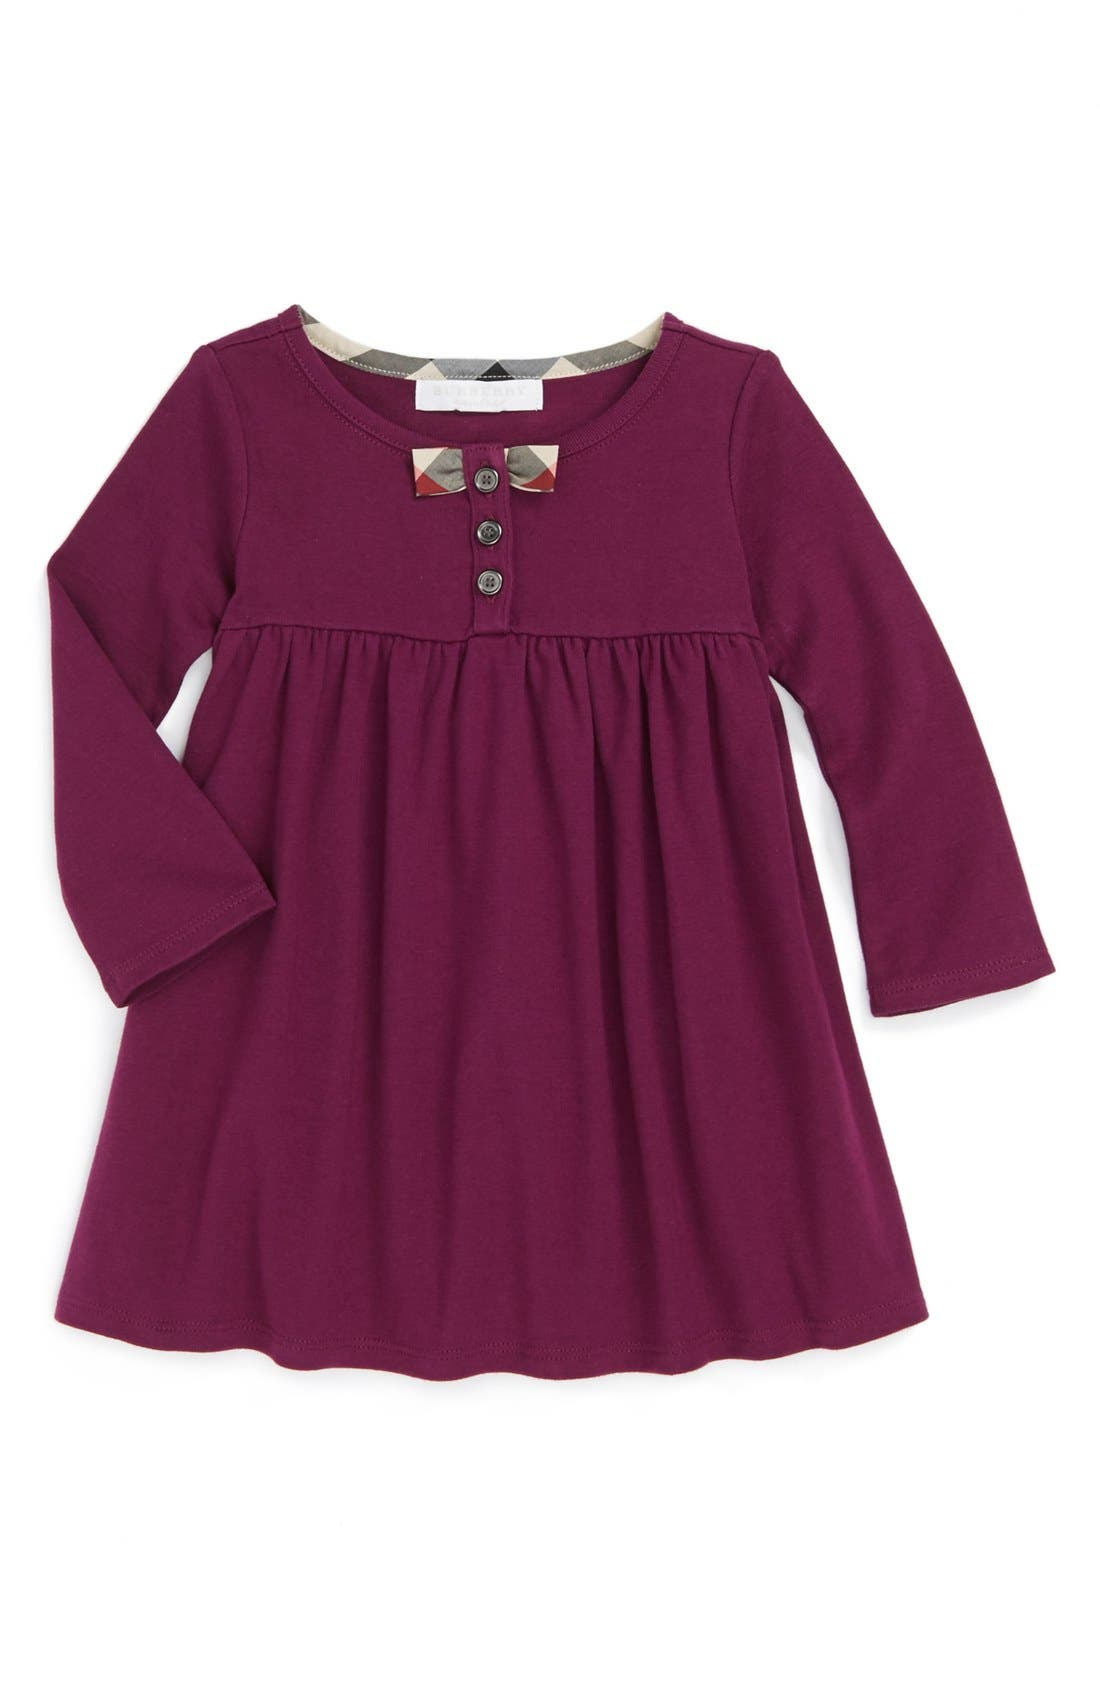 Alternate Image 1 Selected - Burberry Knit Dress (Baby Girls)